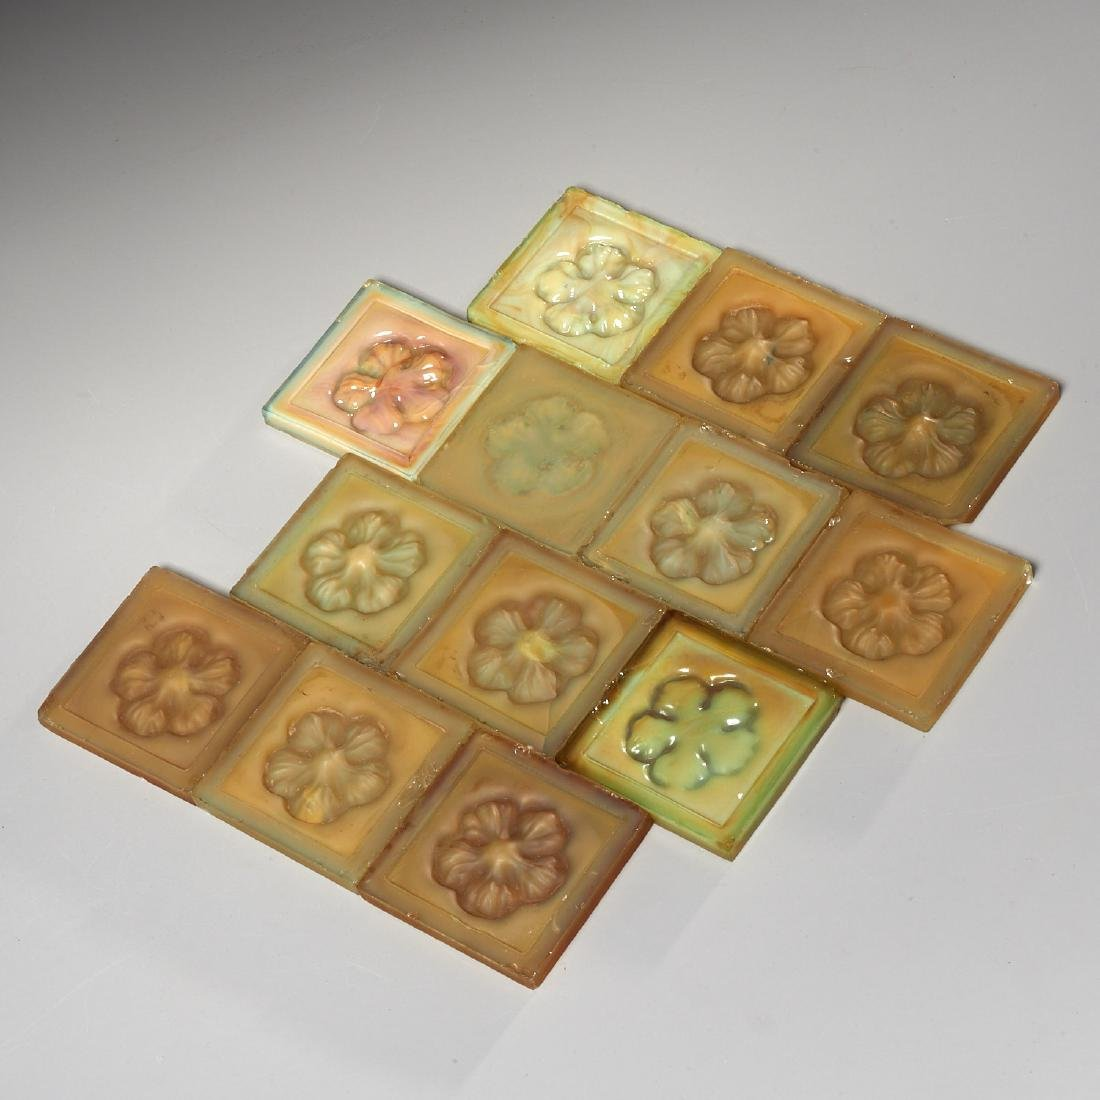 (13) Tiffany Glass & Decorating Co. tiles